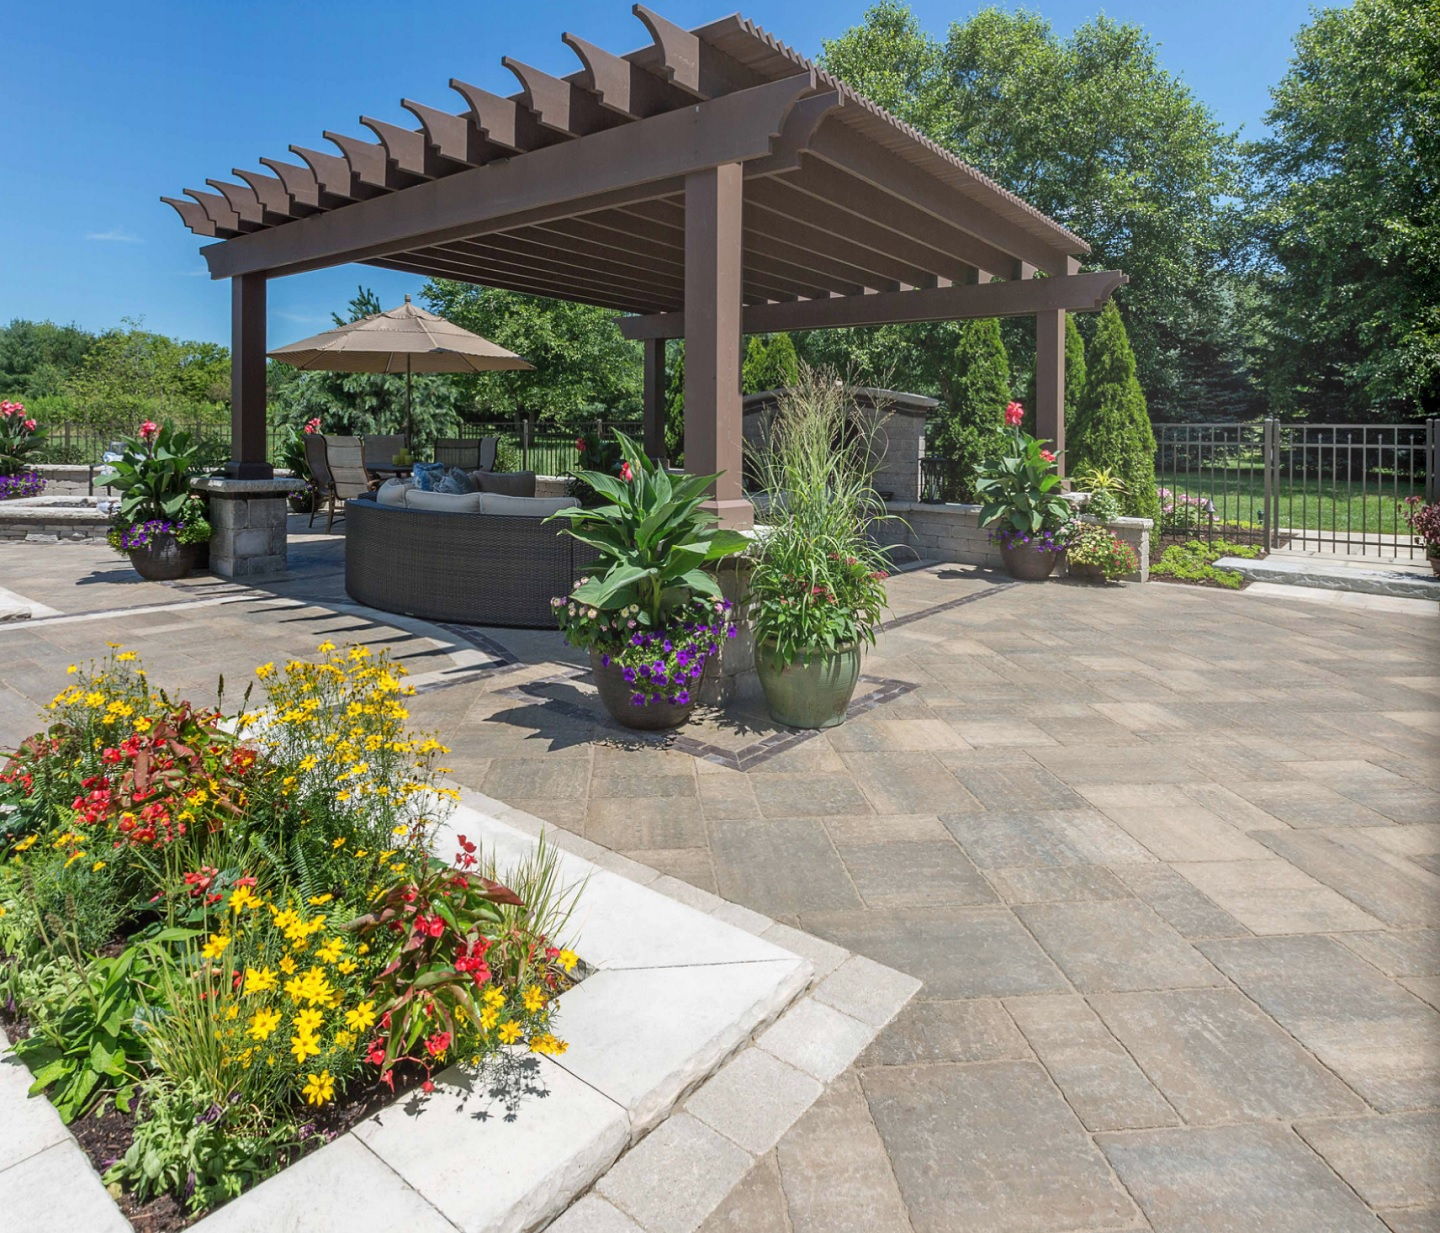 Patio pavers and pergola in Rochester Hills, MI